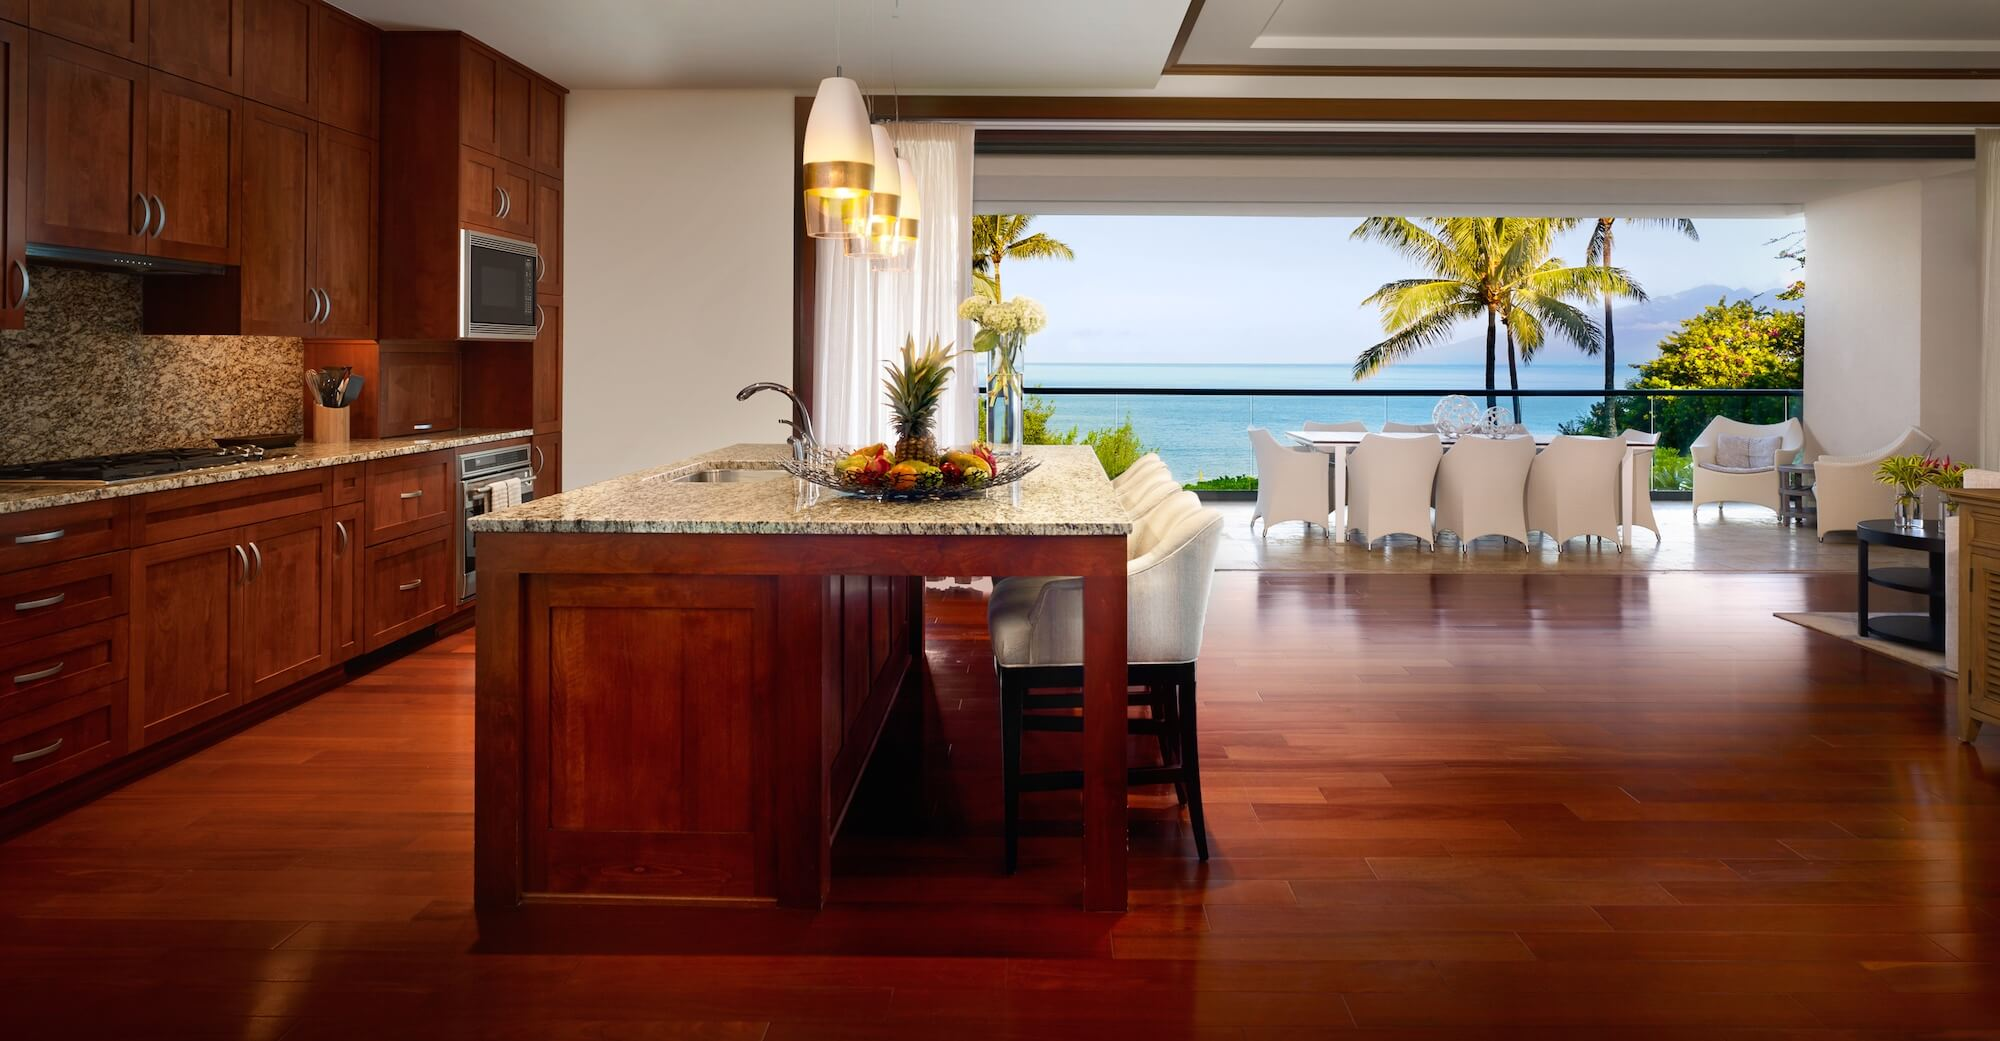 maui hotels with kitchens www ikea kitchen cabinets montage fractional ownership kapalua bay